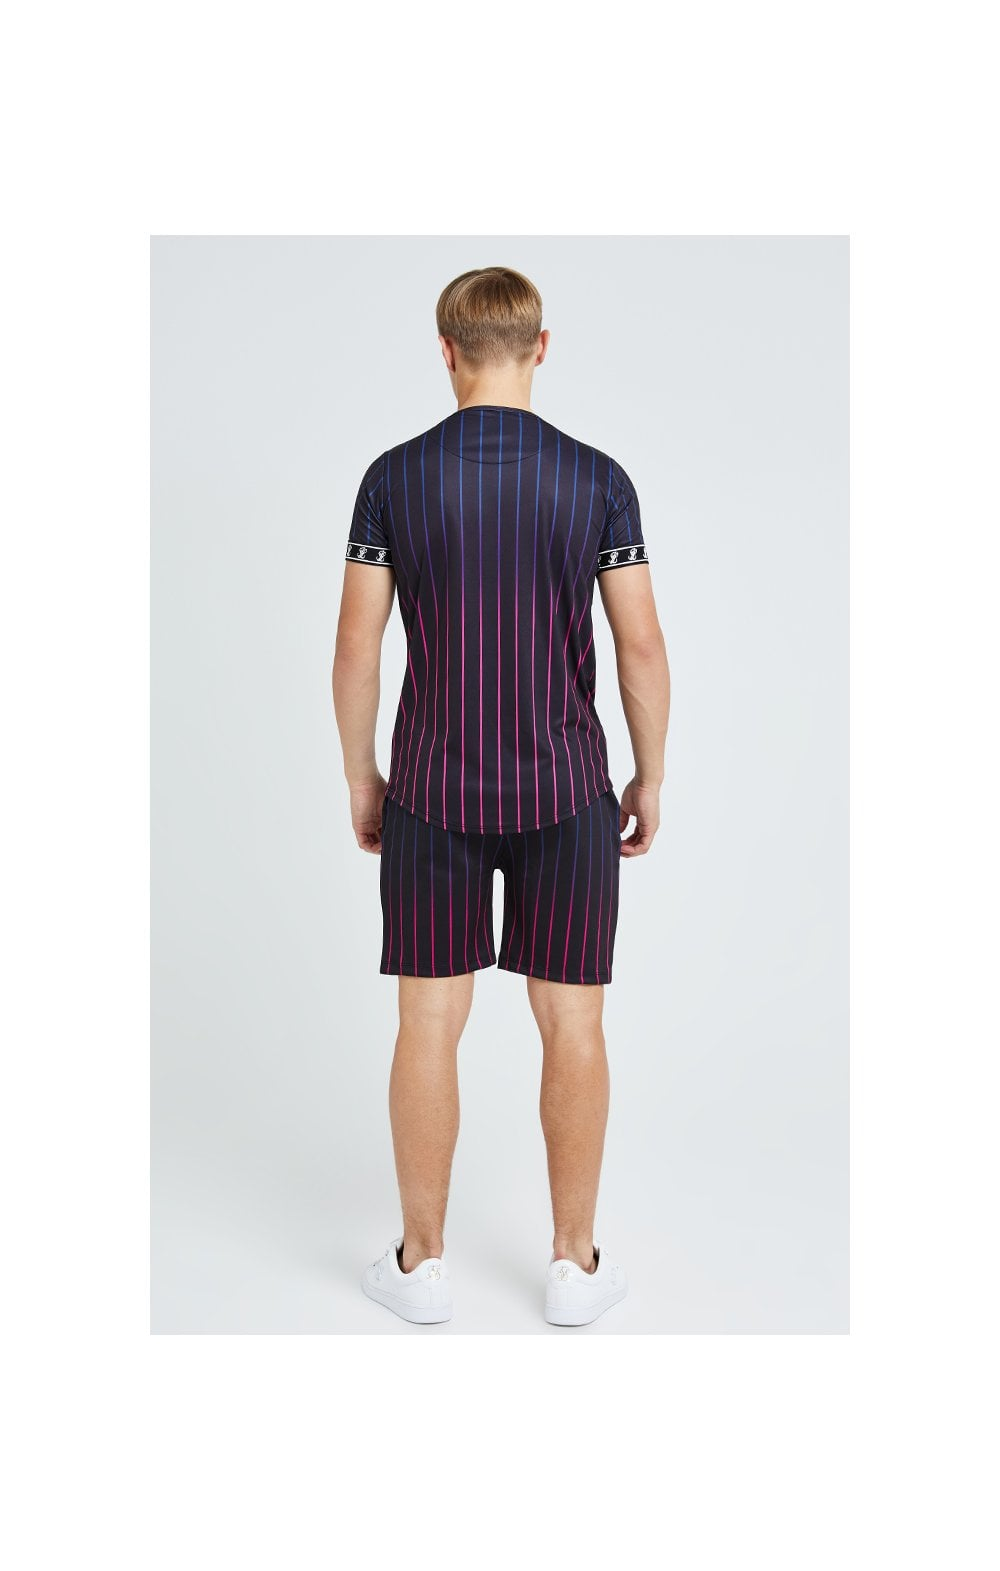 Illusive London Fade Stripe Shorts - Black (7)